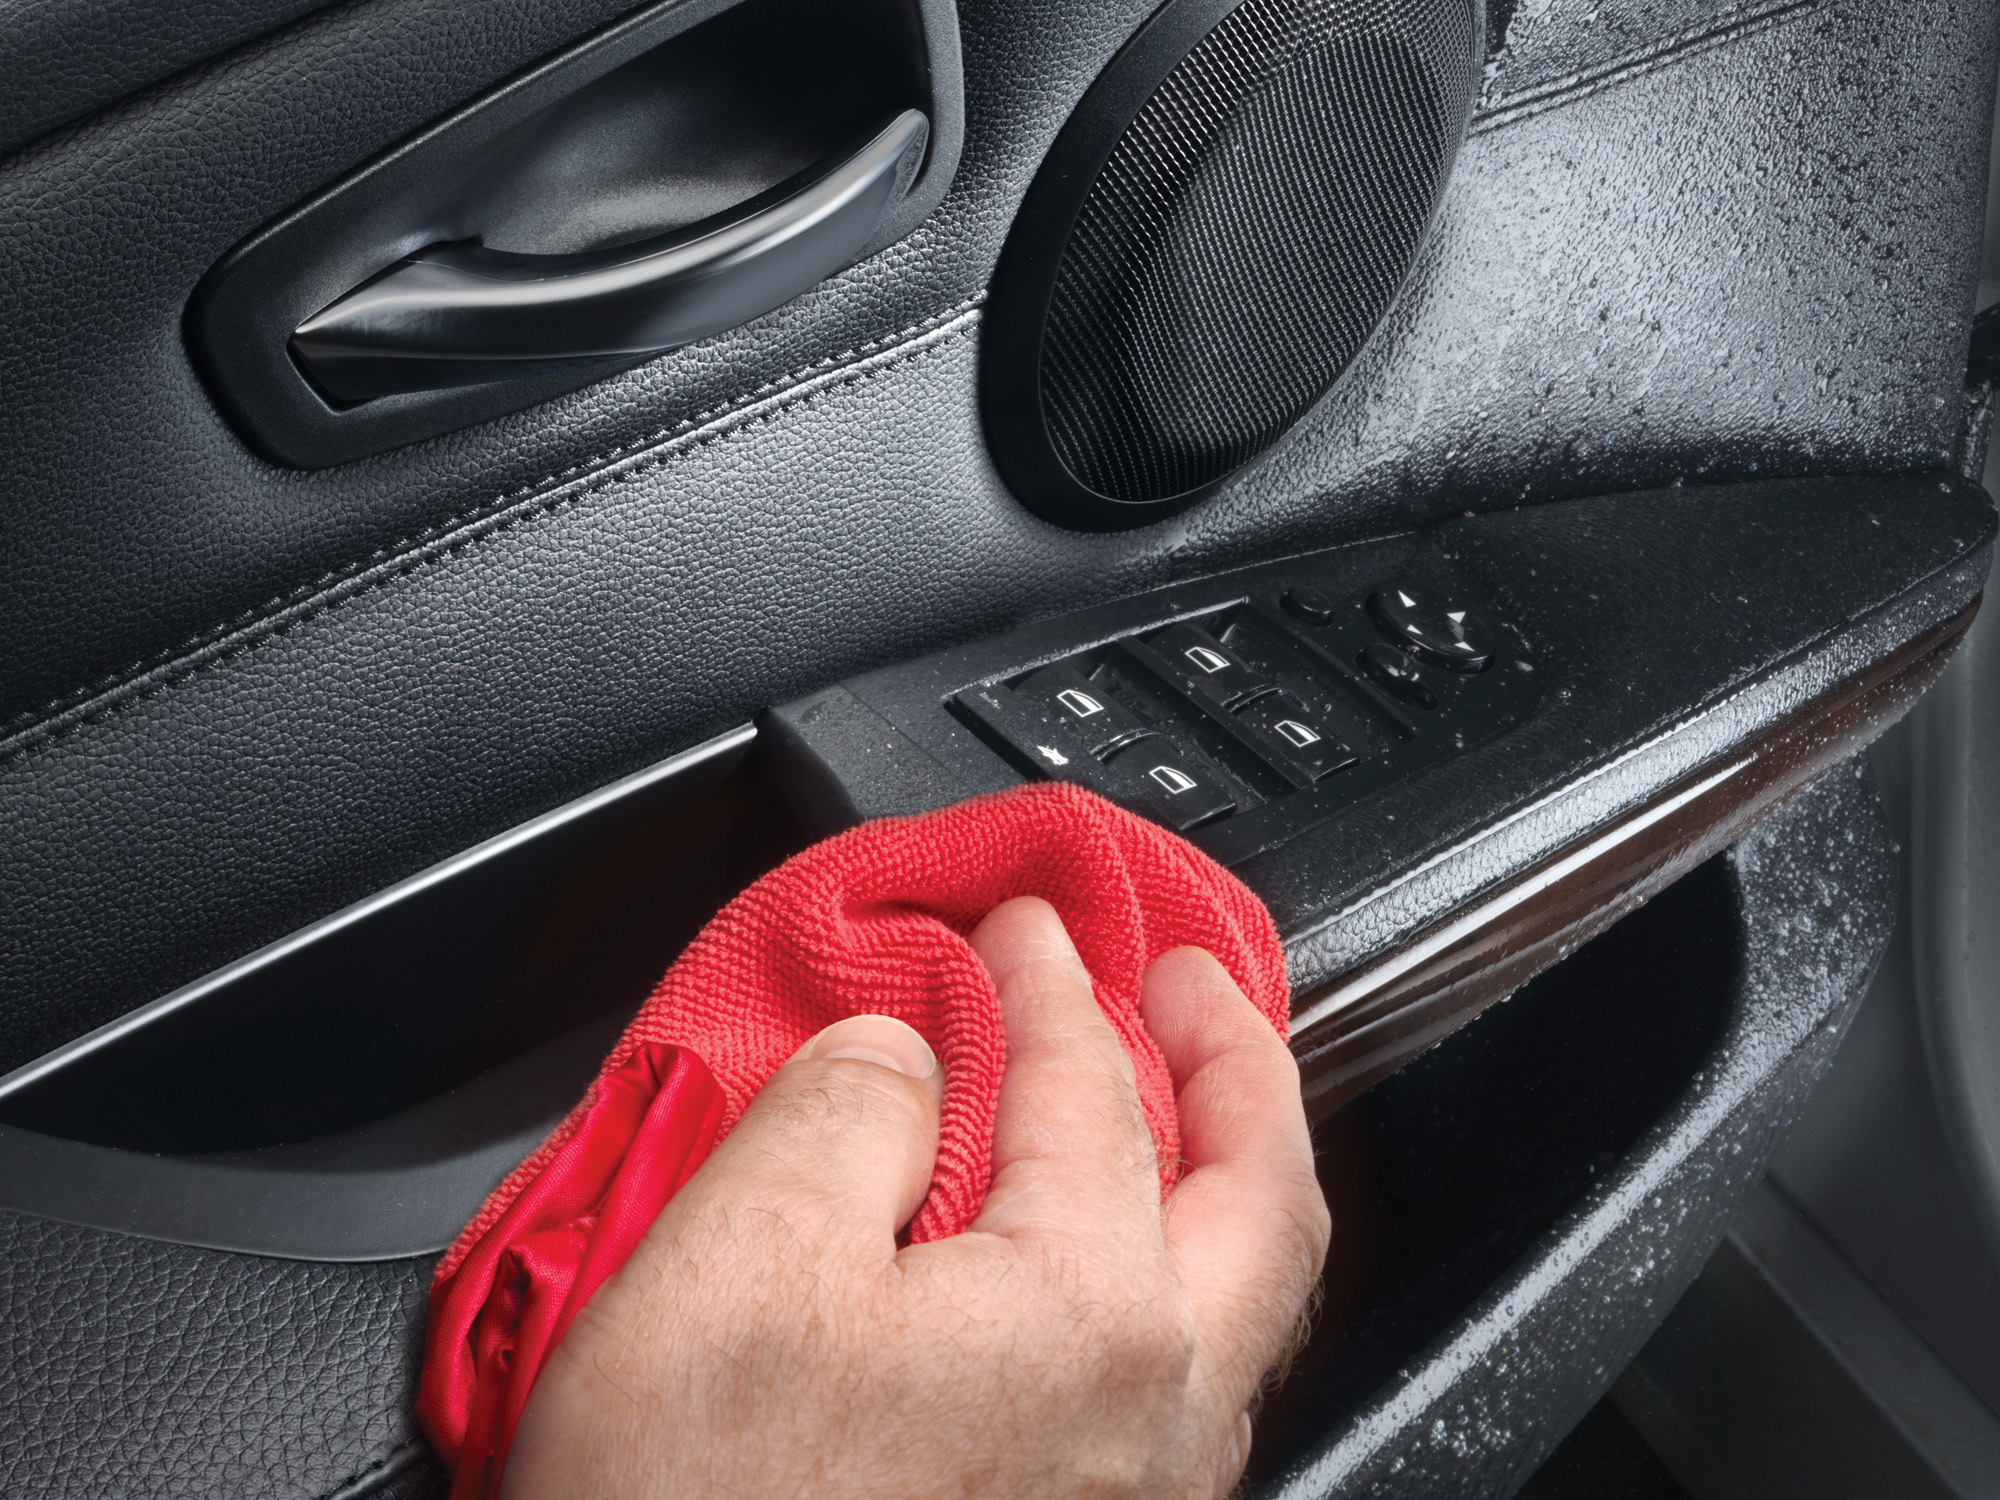 Interior Detailer cleans just about any interior automotive surface.